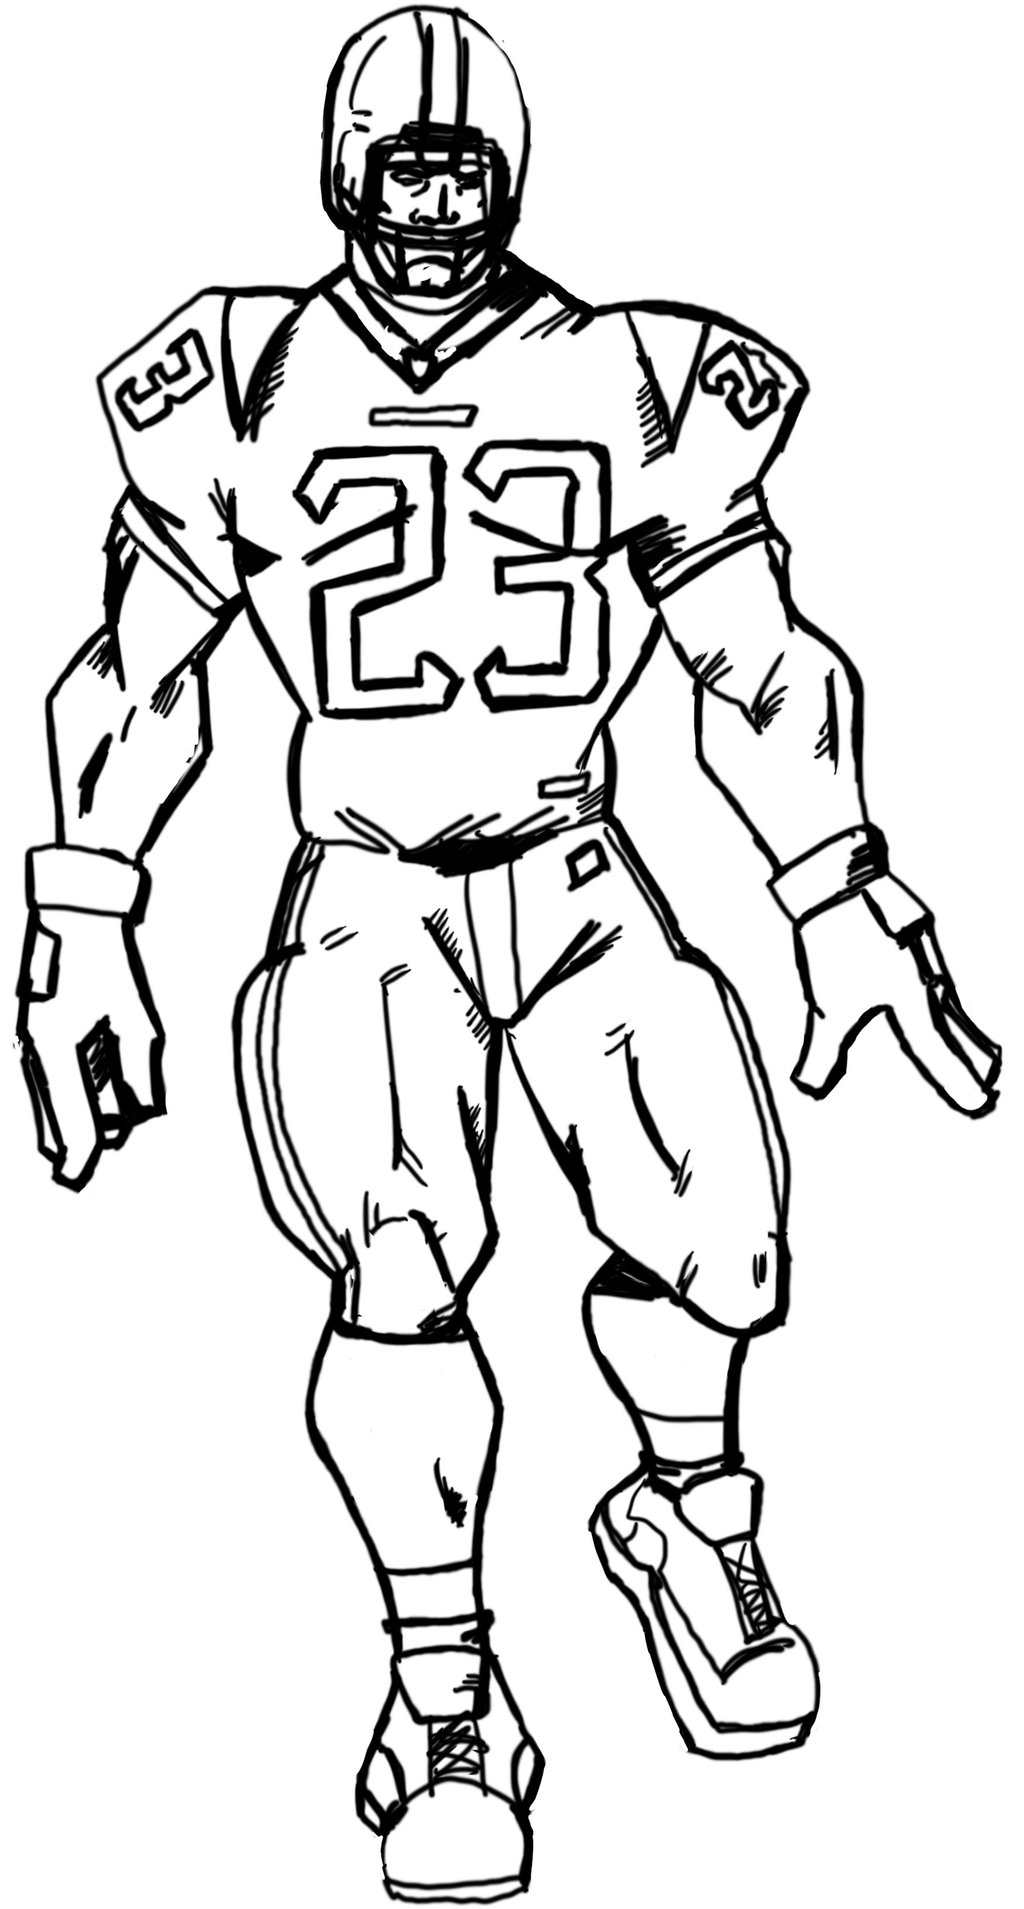 Draw a football player